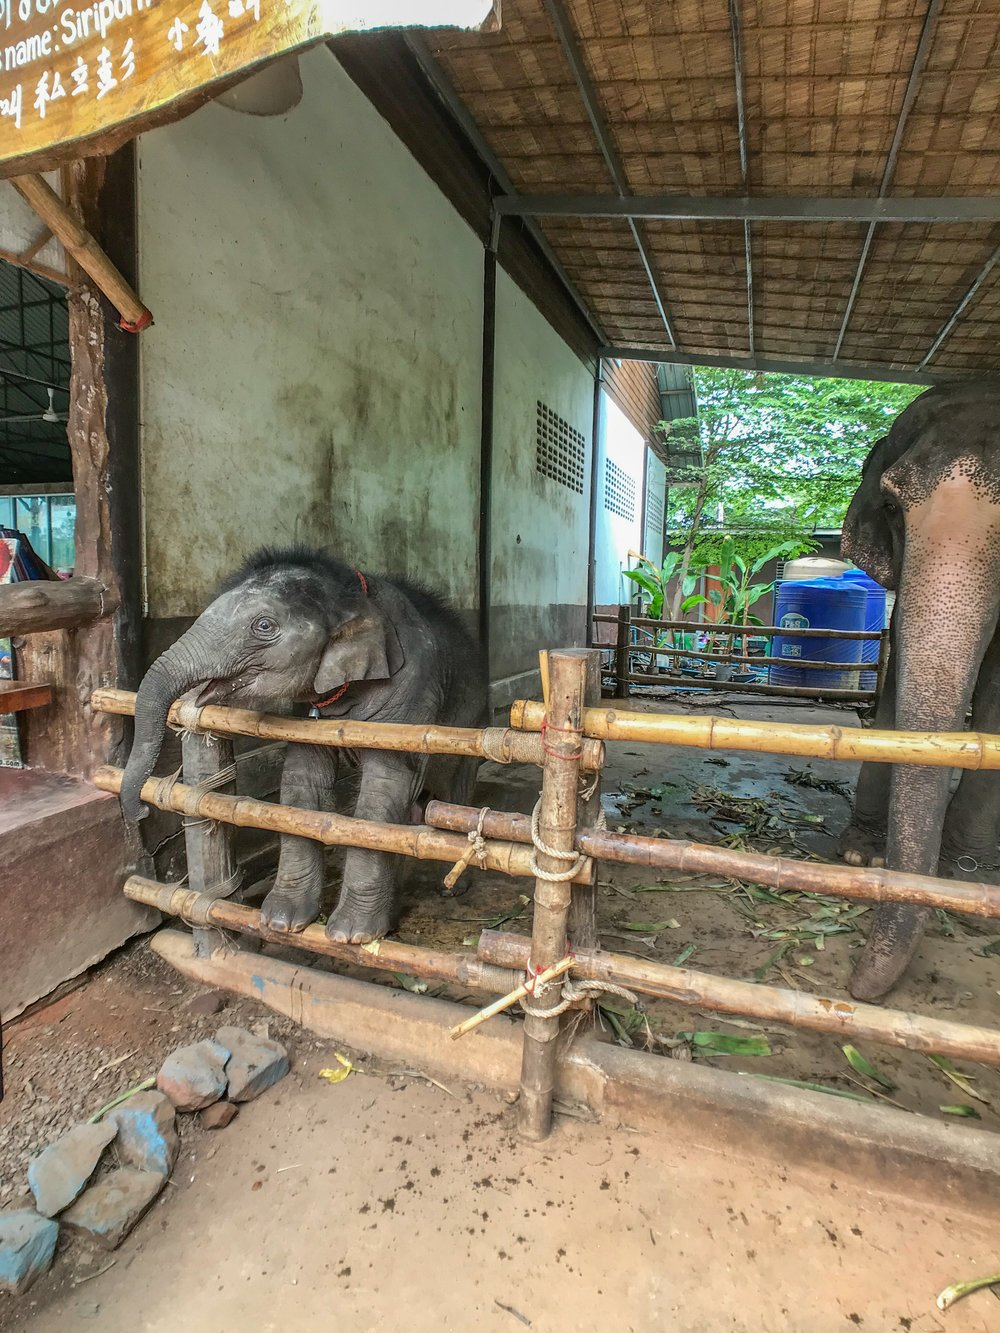 Unable to avoid animal cruelty - enslaved elephants outside the Karen Village